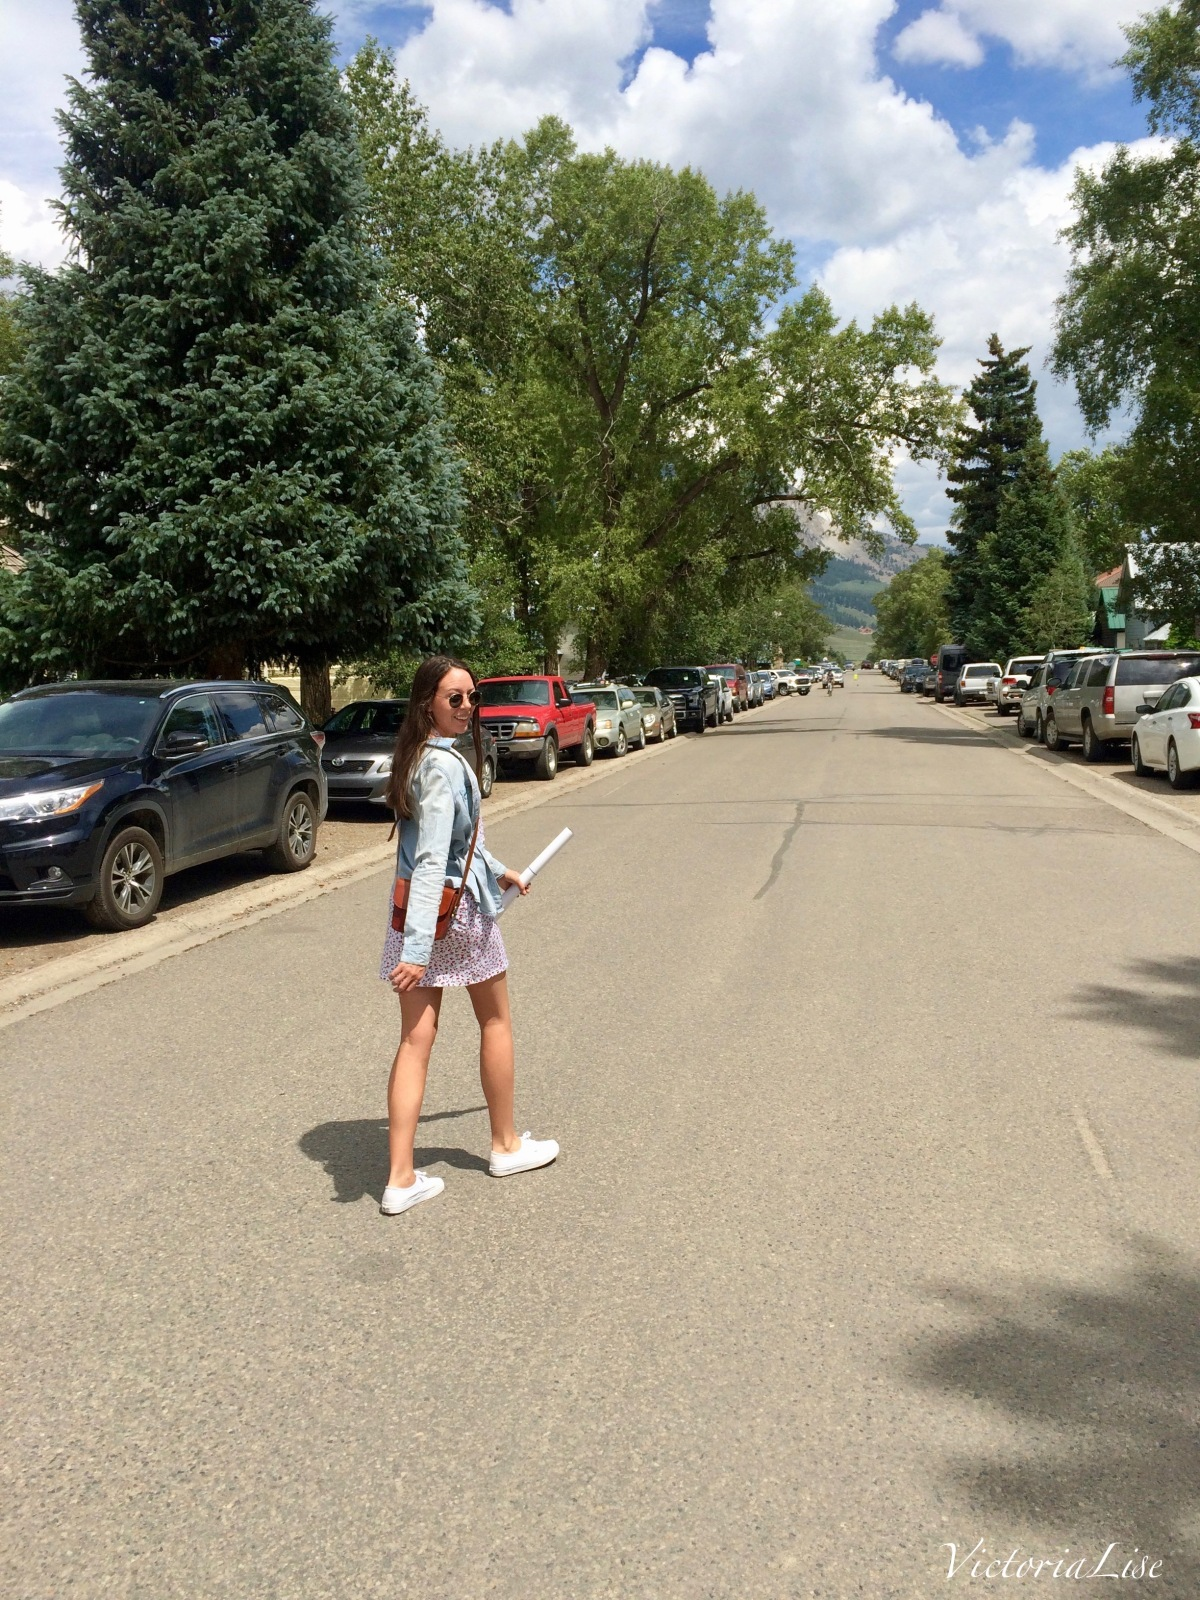 Victoria Lise walking down Sopris St. in Crested Butte, CO